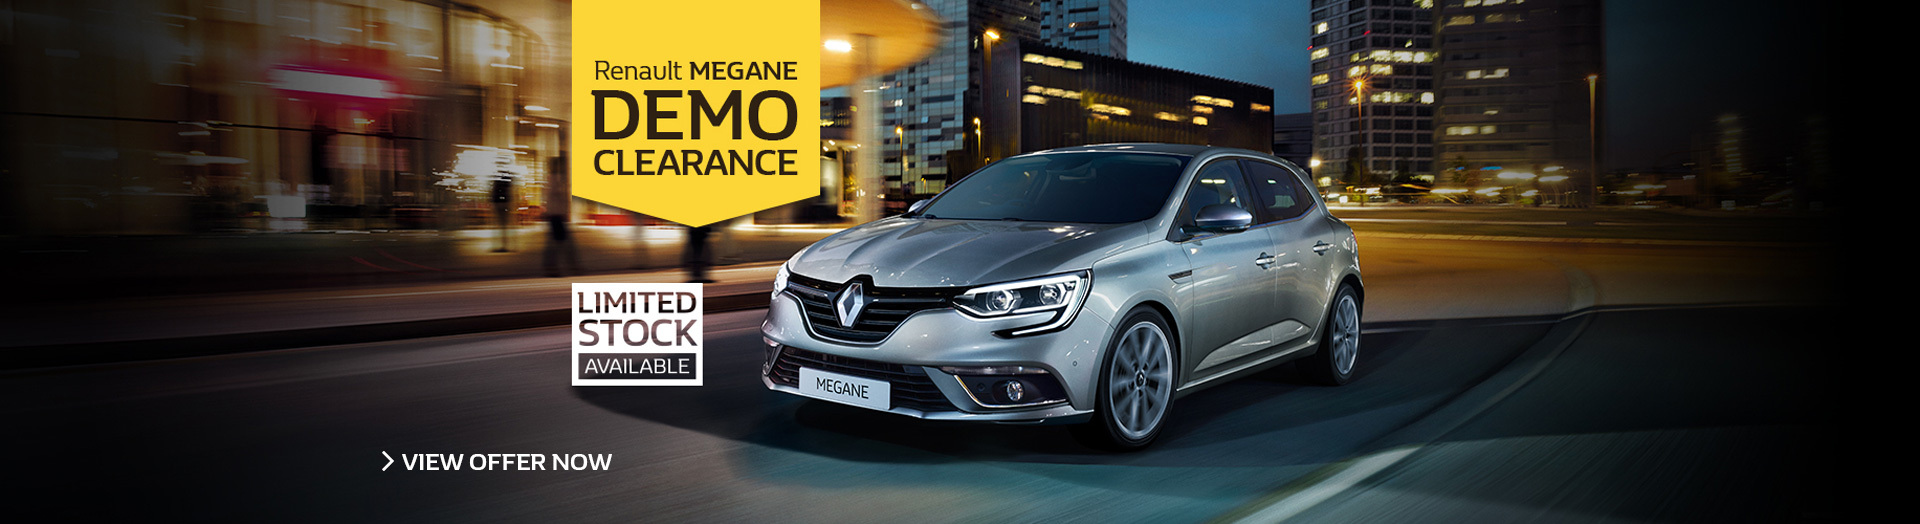 Renault - National Offer - Renault Megane Demo Clearance